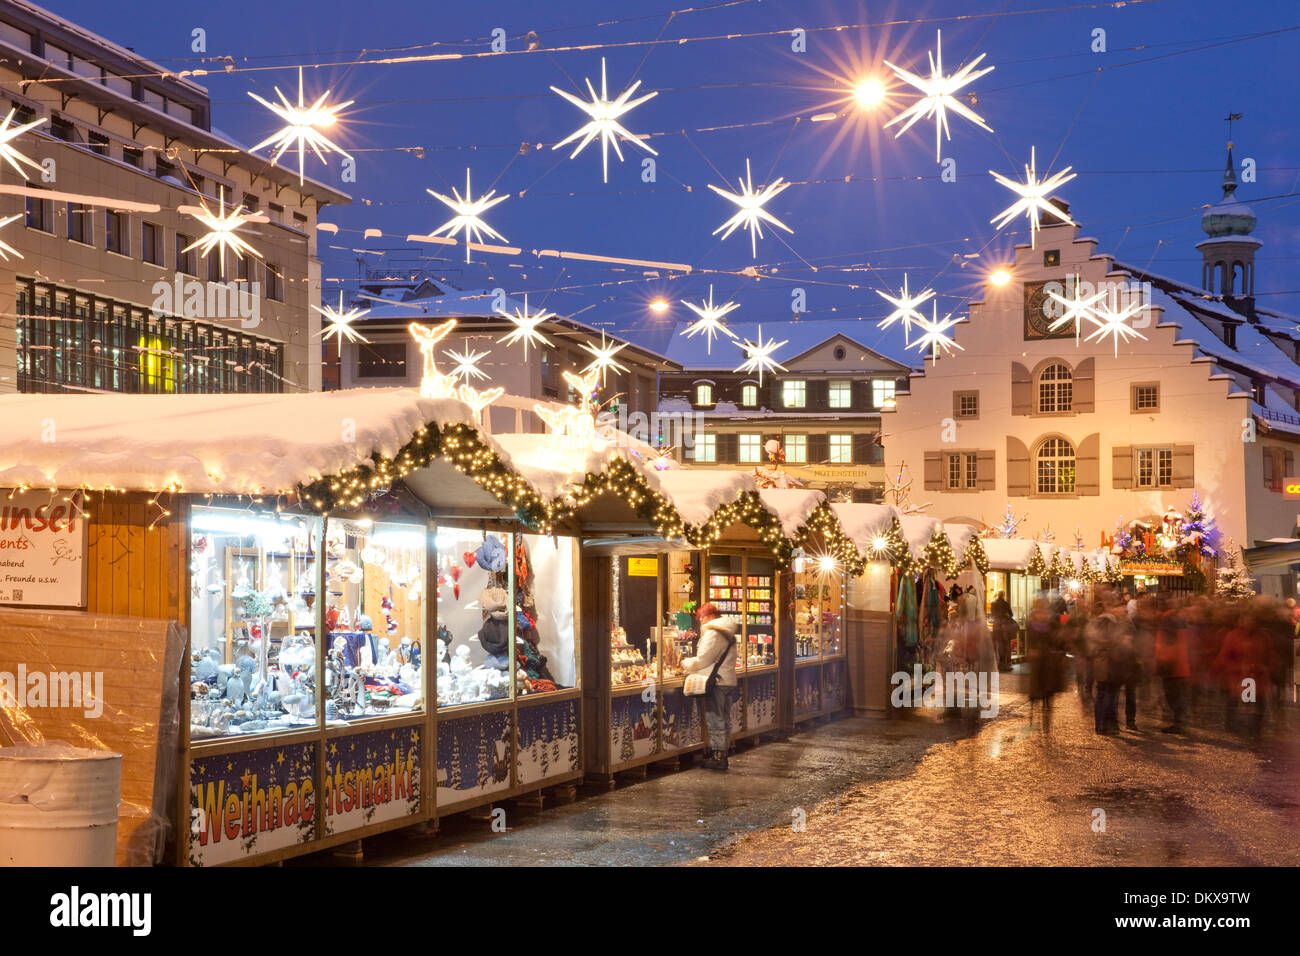 switzerland europe night dark christmas advent canton sg st gallen stock photo royalty free. Black Bedroom Furniture Sets. Home Design Ideas